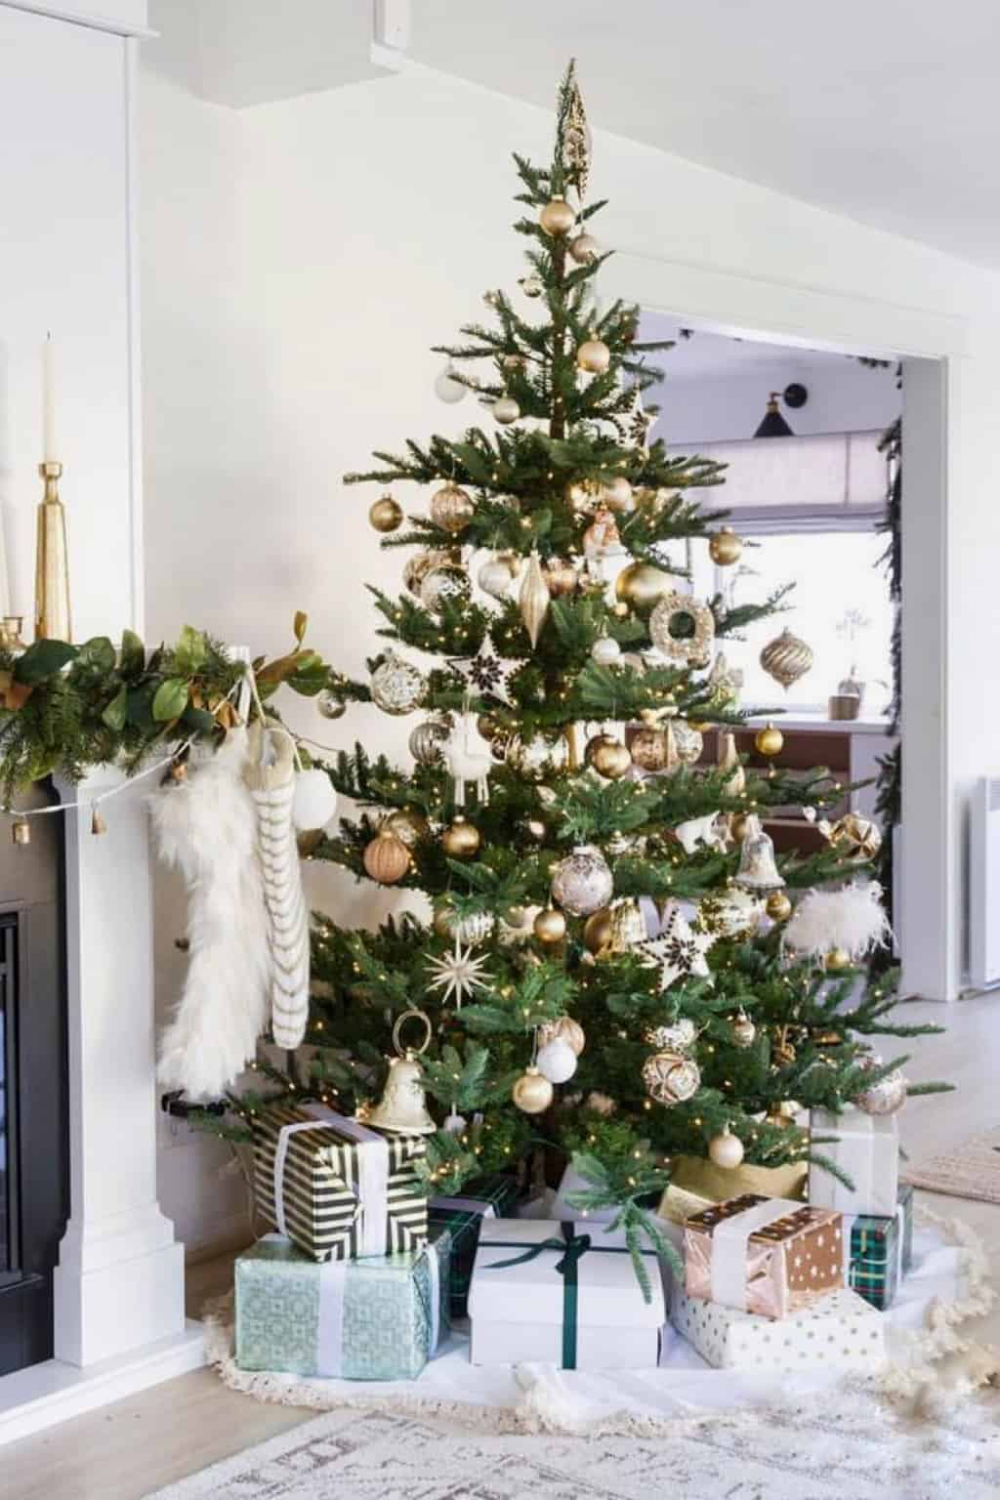 15 Best Decorated Christmas Trees On The Internet -   17 christmas tree inspiration simple ideas